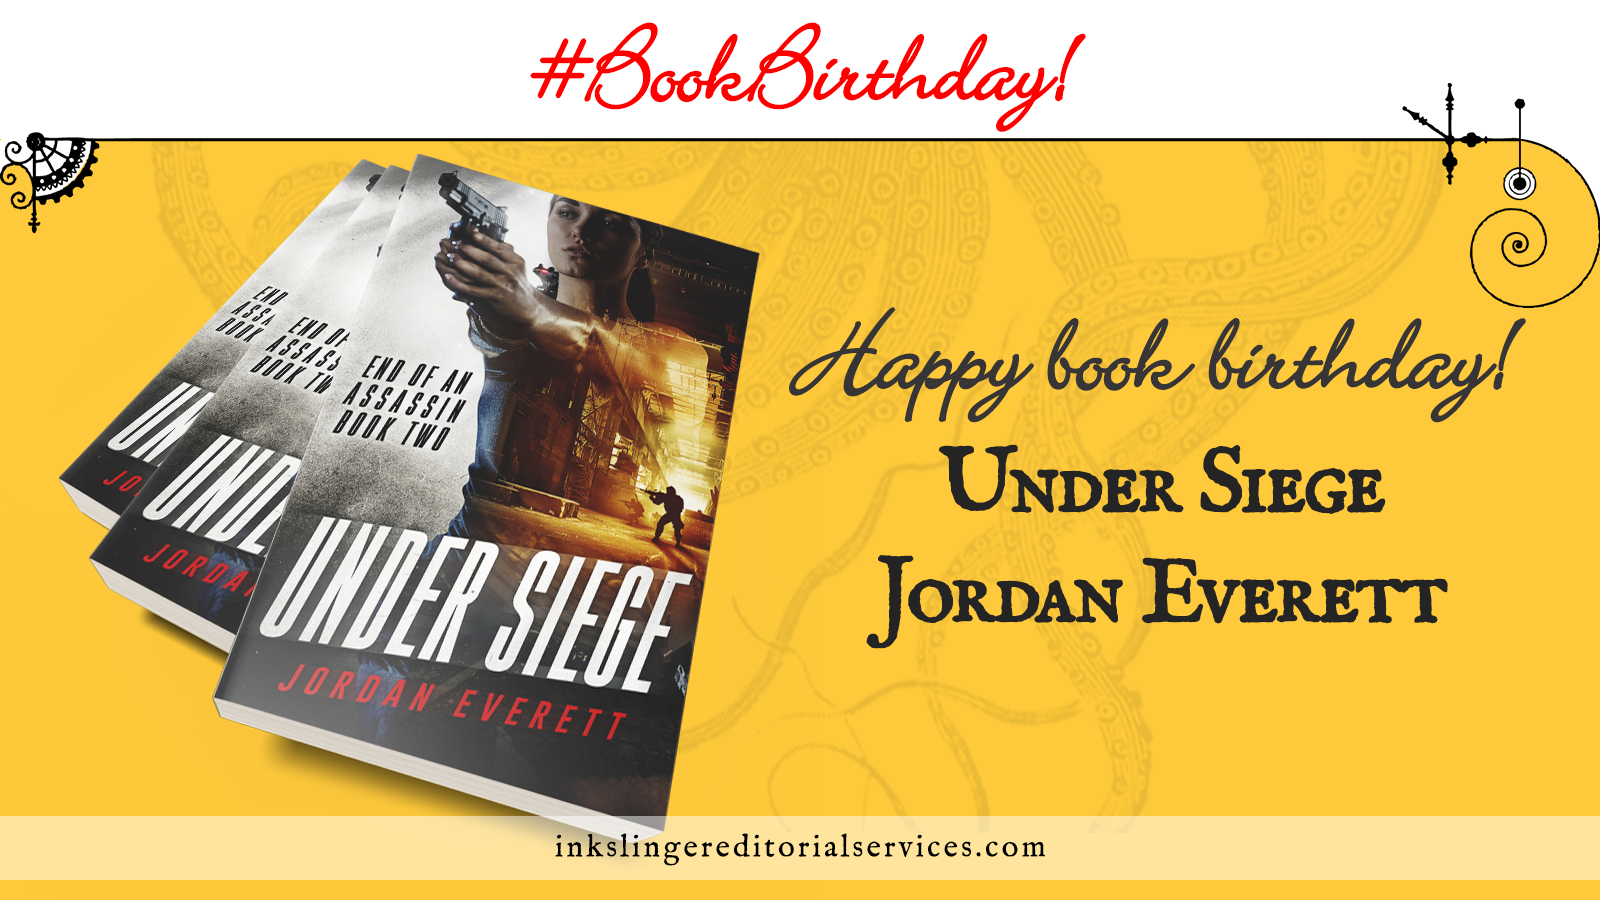 #BookBirthday! Happy book birthday! Under Siege by Jordan Everett. 3 copies of Under Siege are stacked on a field of yellow with faded tentacles in the background.